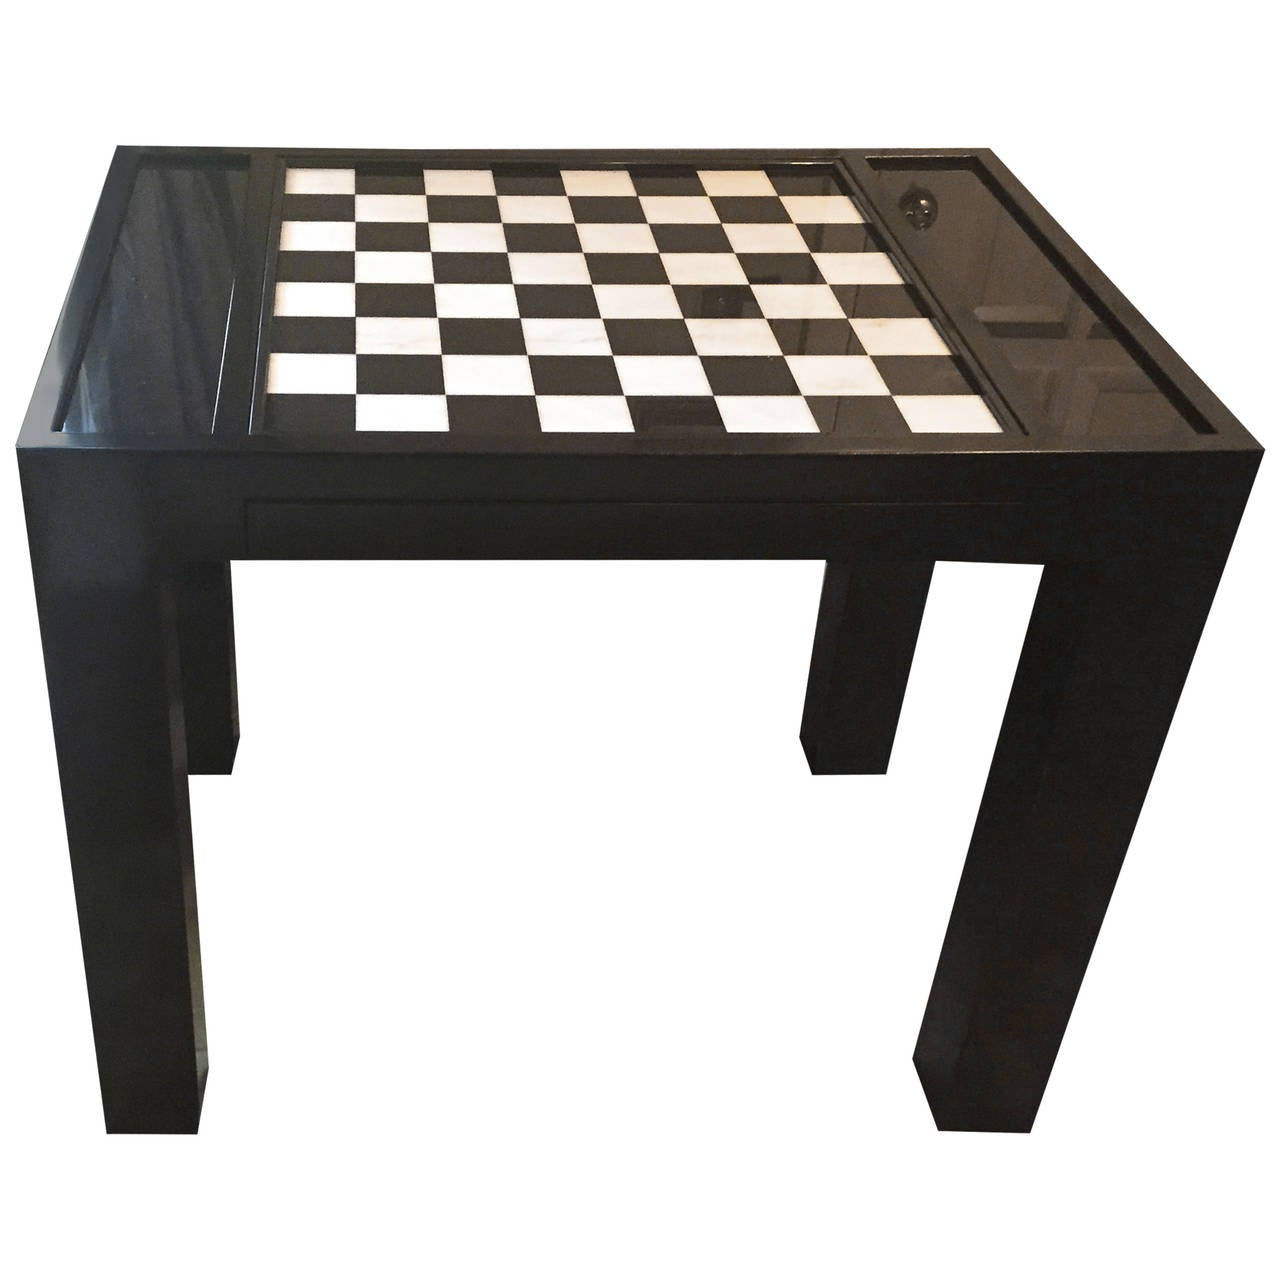 Mid 20th century chess or games table for sale at 1stdibs - Archives departementales 33 tables decennales ...